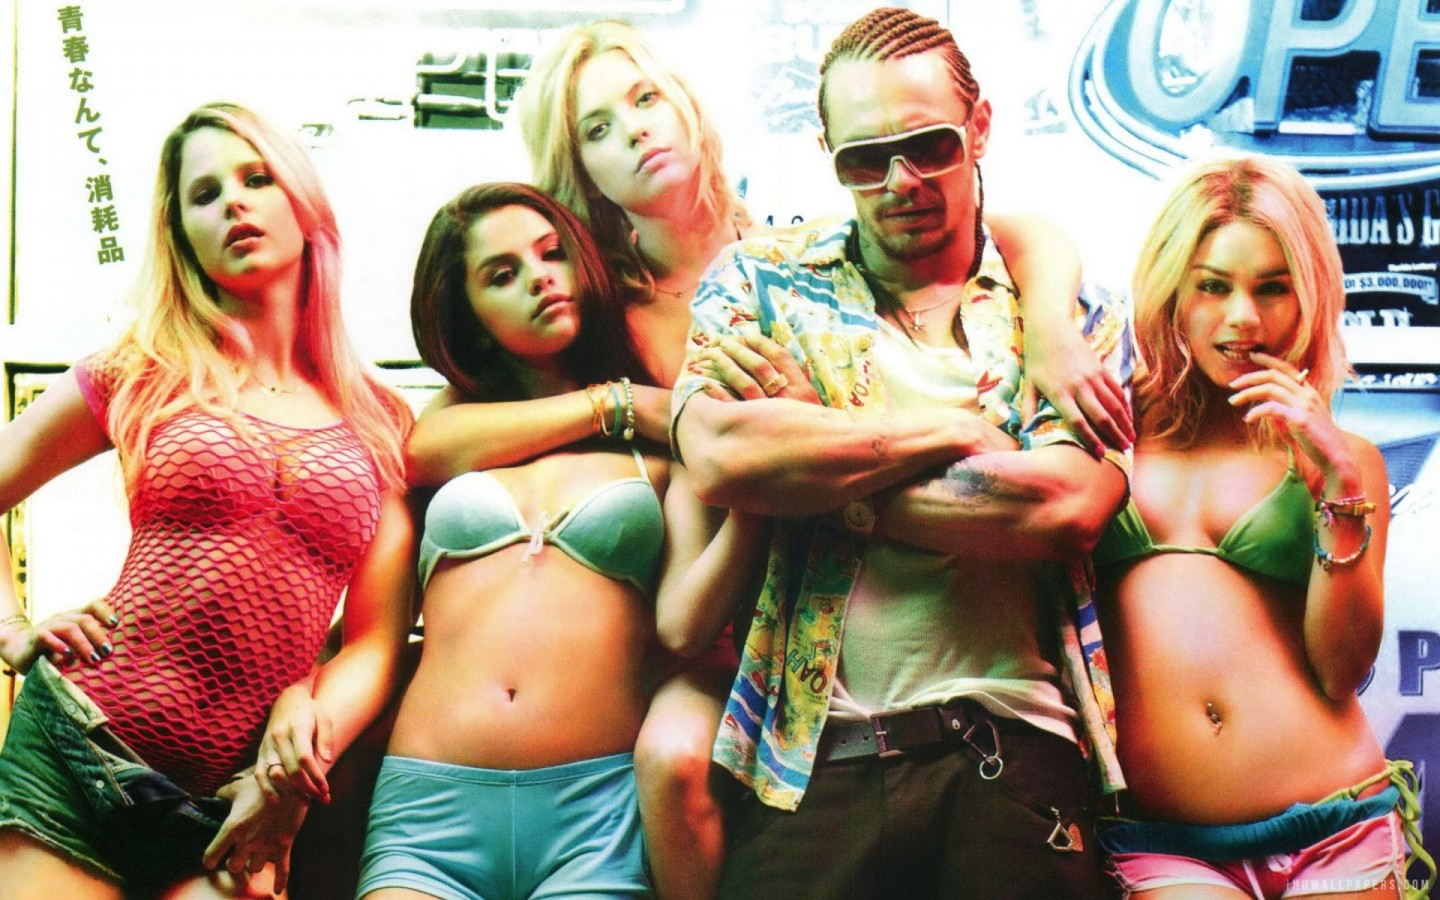 SPRINGBREAKERS - Writer/Editor - Feature Doc for VICE and On-line Promos